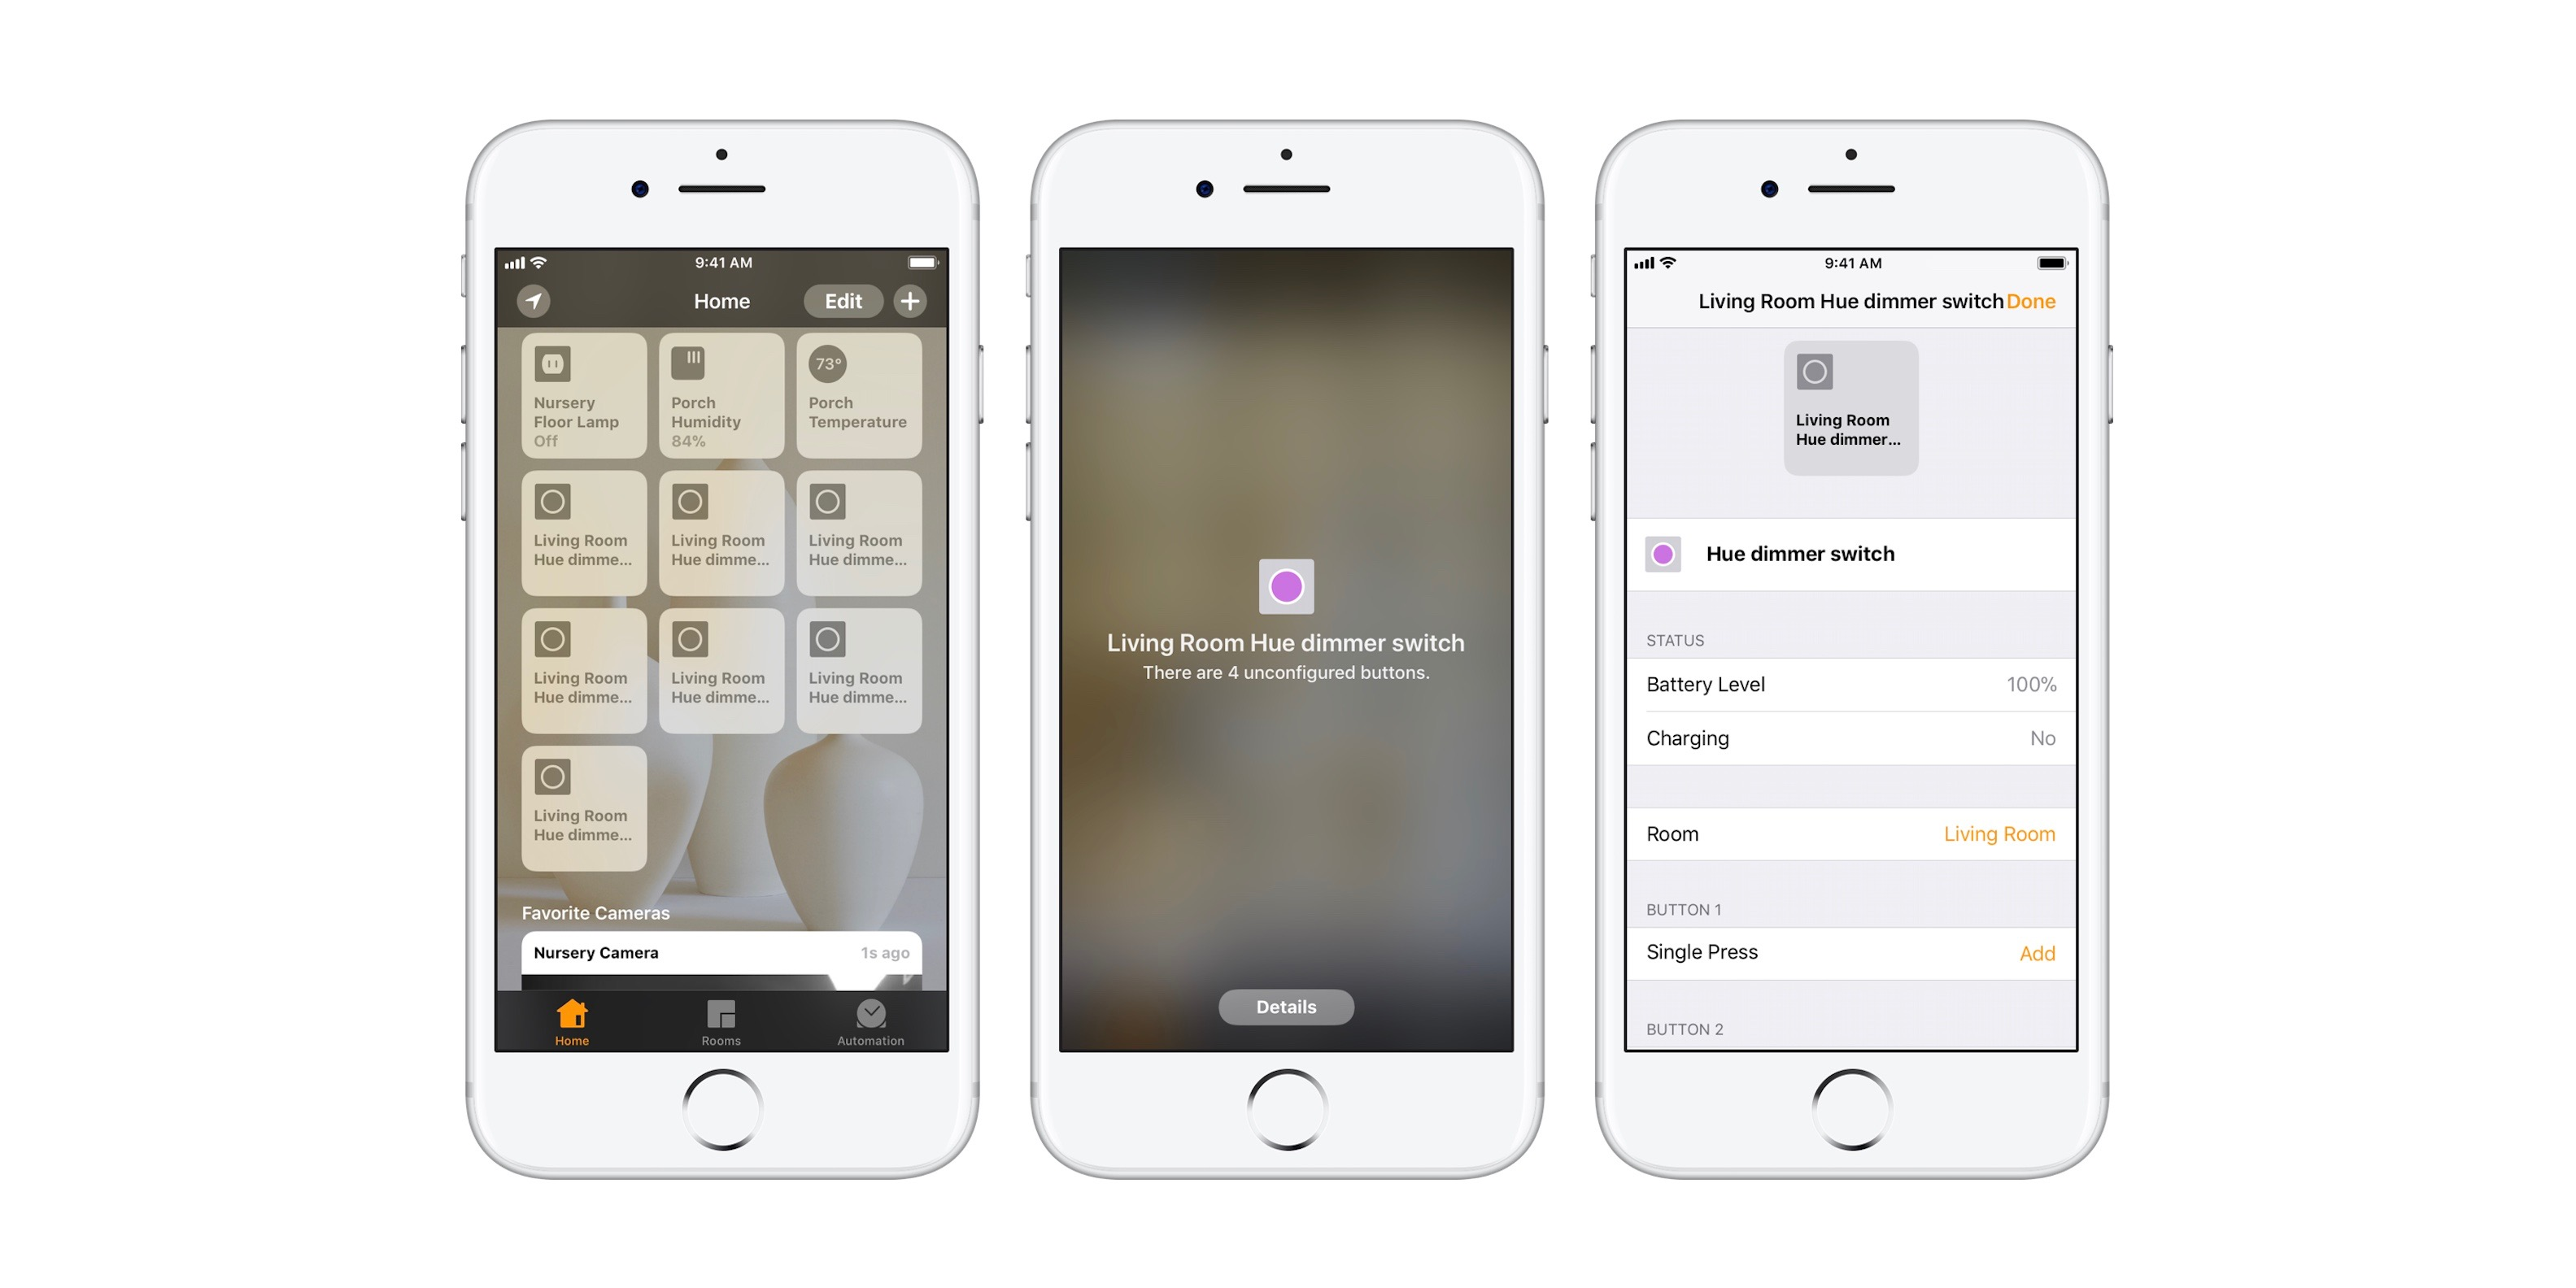 Philips Hue retroactively adds HomeKit features to tap, dimmer switch and motion sensor